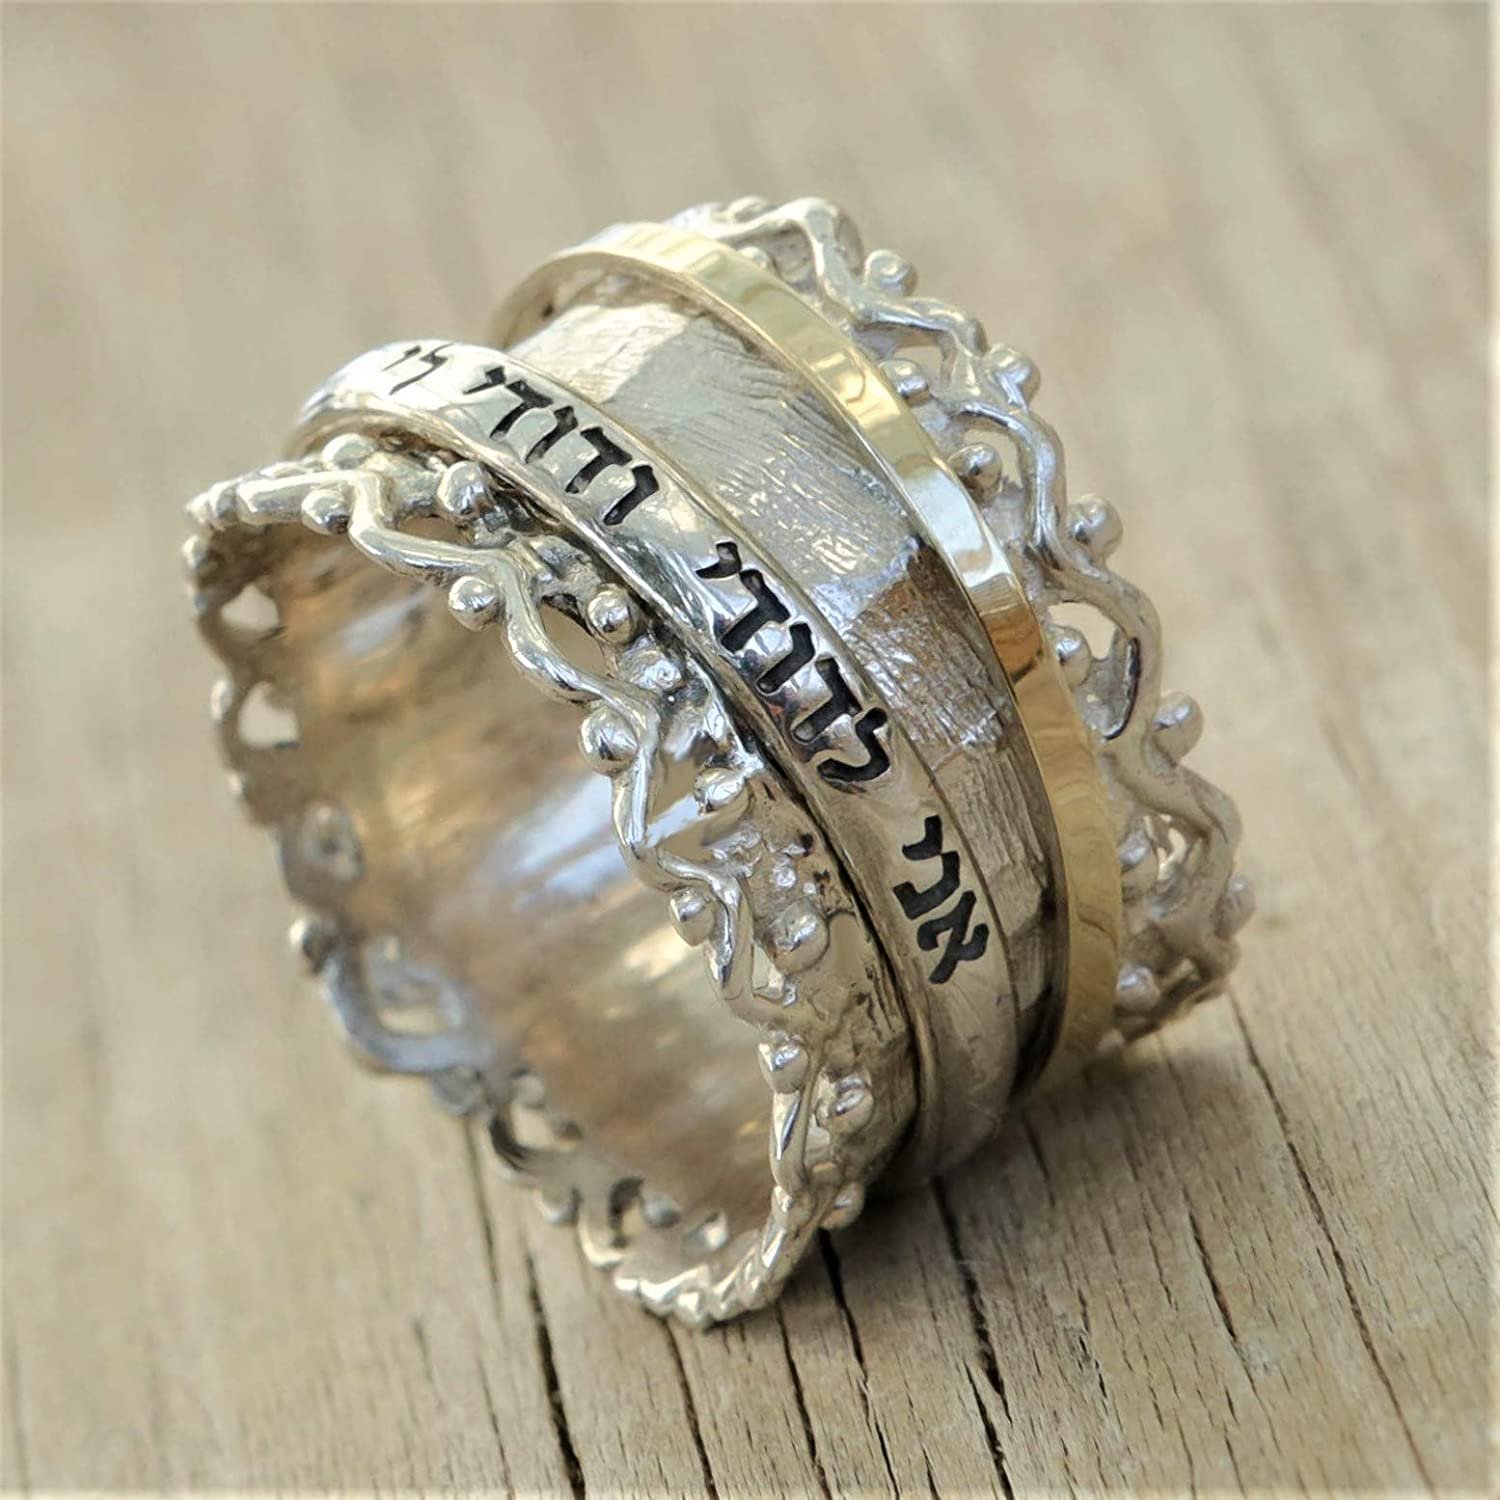 This is a picture of Hebrew Inscribed Ring, Textured Silver and Gold Band, Jewish Wedding Ring